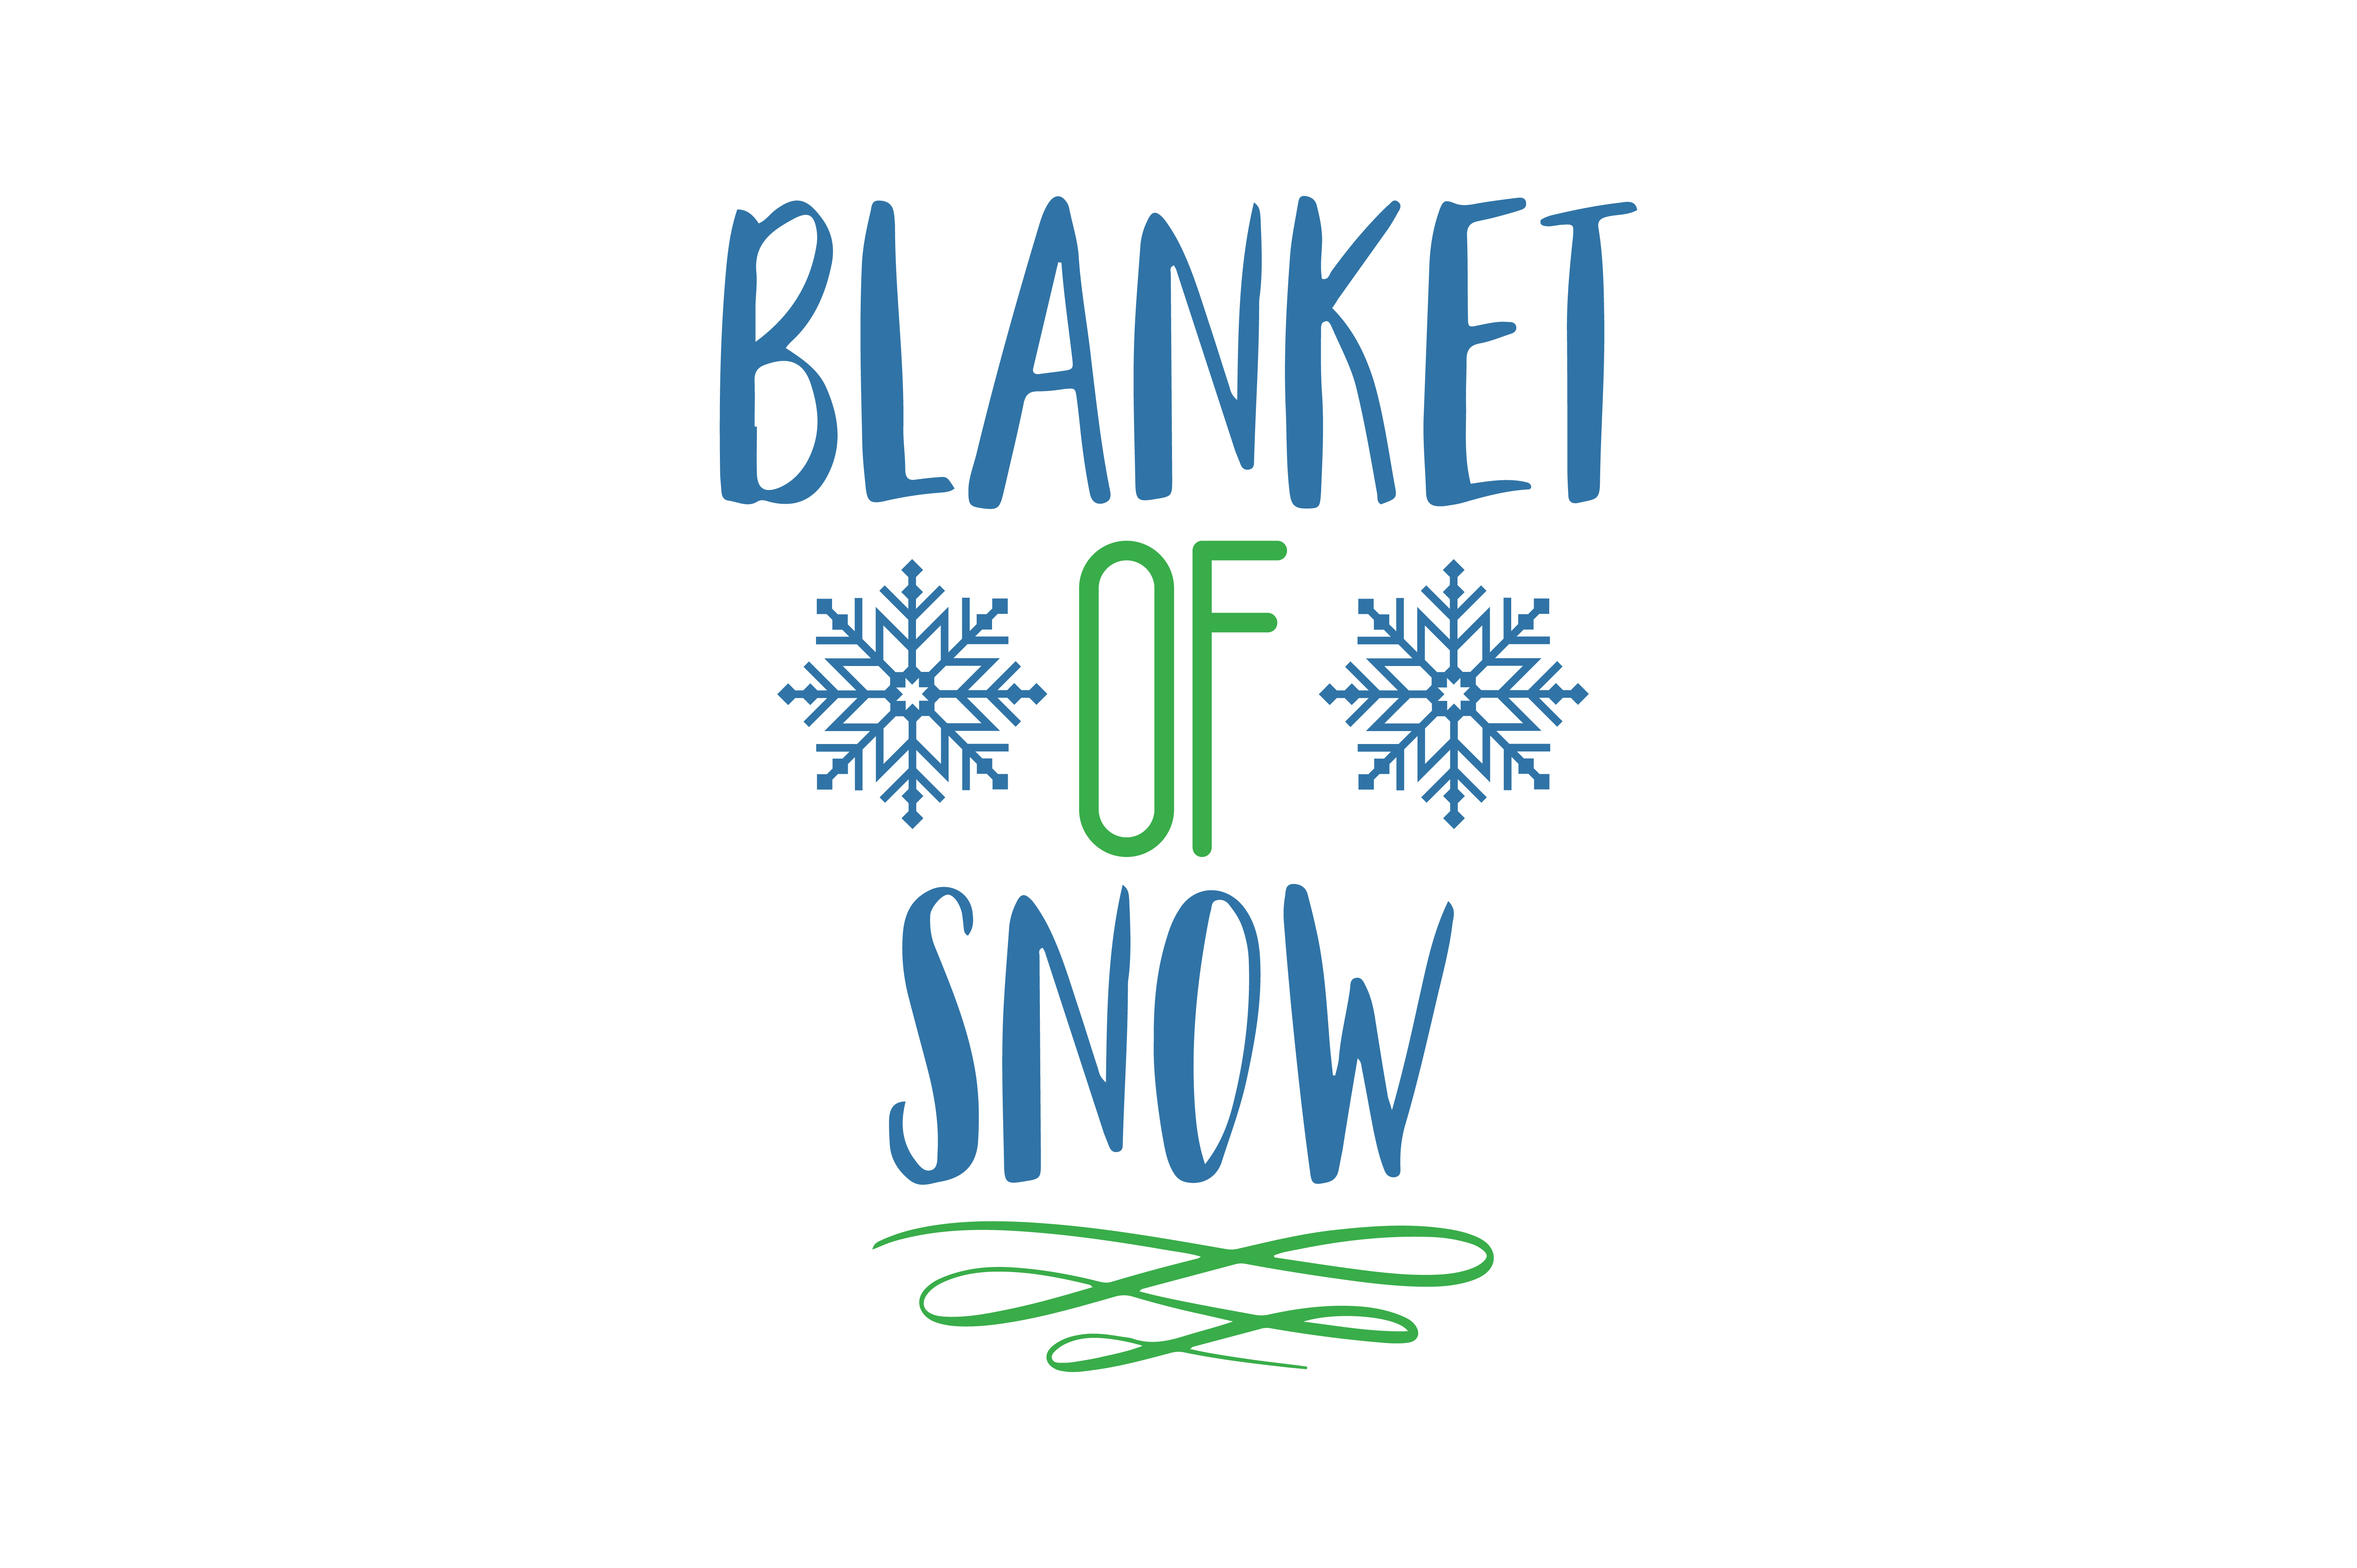 Download Free Blanket Of Snow Quote Svg Cut Graphic By Thelucky Creative Fabrica for Cricut Explore, Silhouette and other cutting machines.